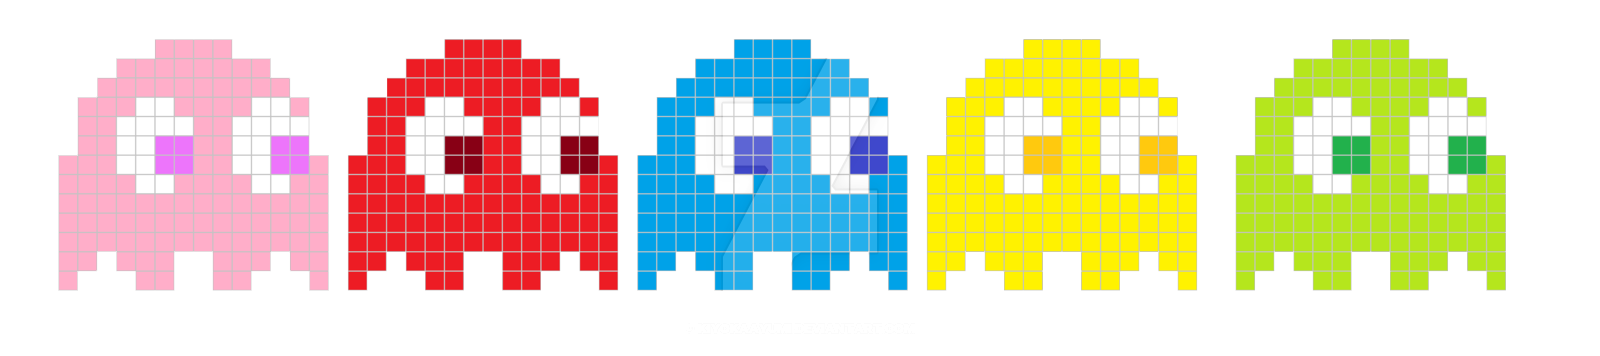 Pacman ghosts png. Pac man images transparent